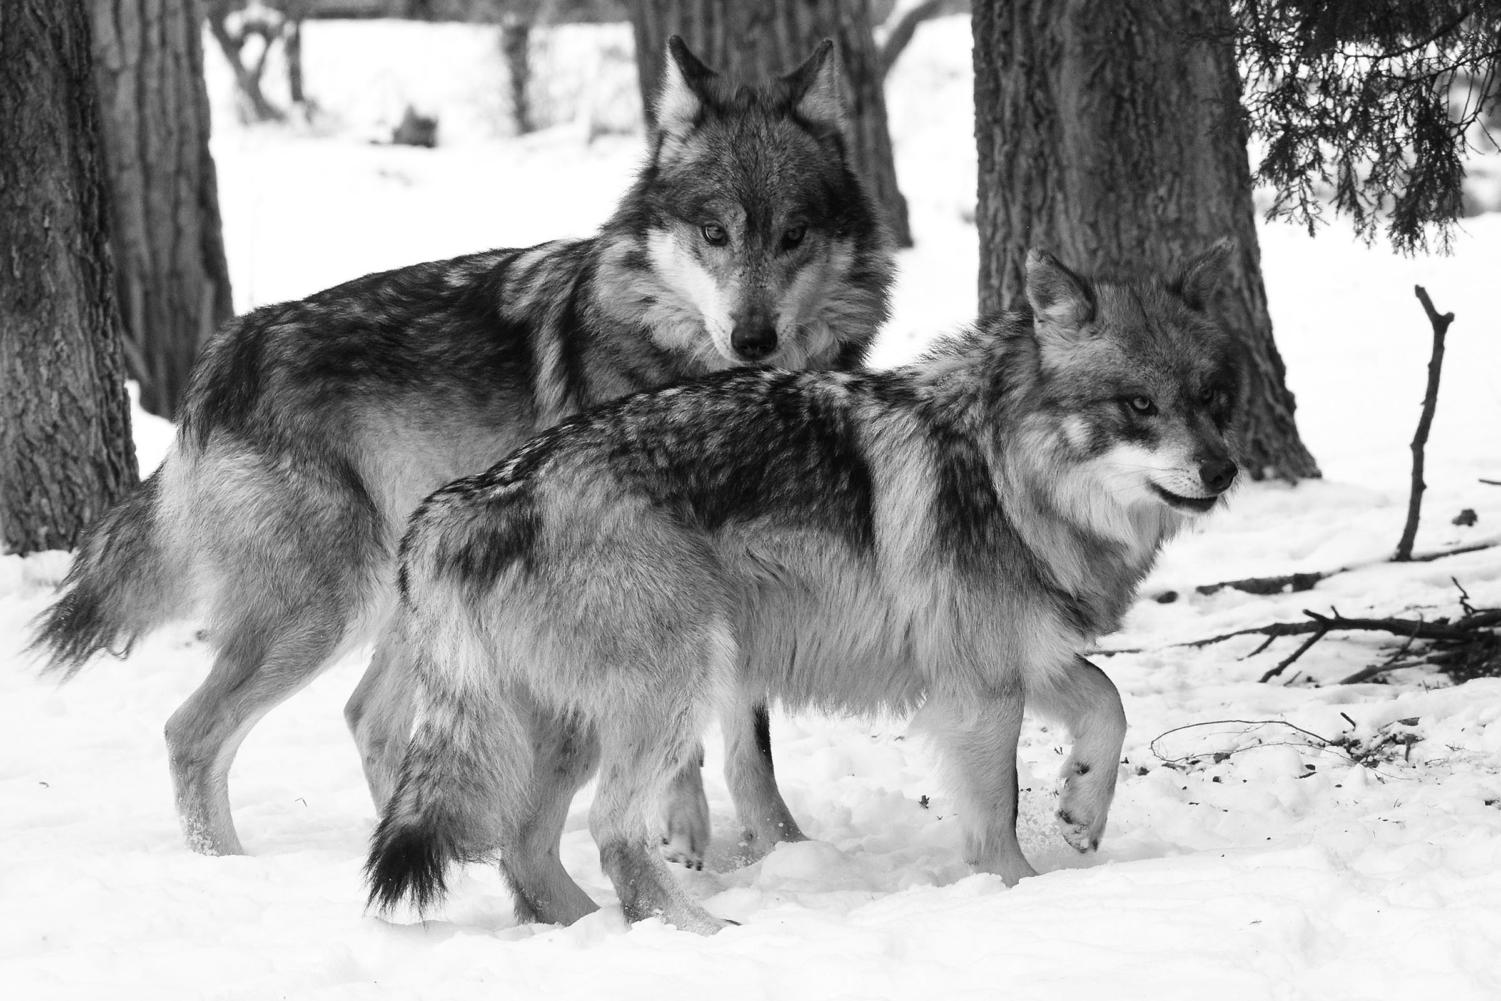 Apache (background) and Ela play in the snow and get acquainted at Brookfield Zoo. They can be seen at the zoo's Regenstein Wolf Woods habitat (Jim Schulz/ Chicago Zoological Society).